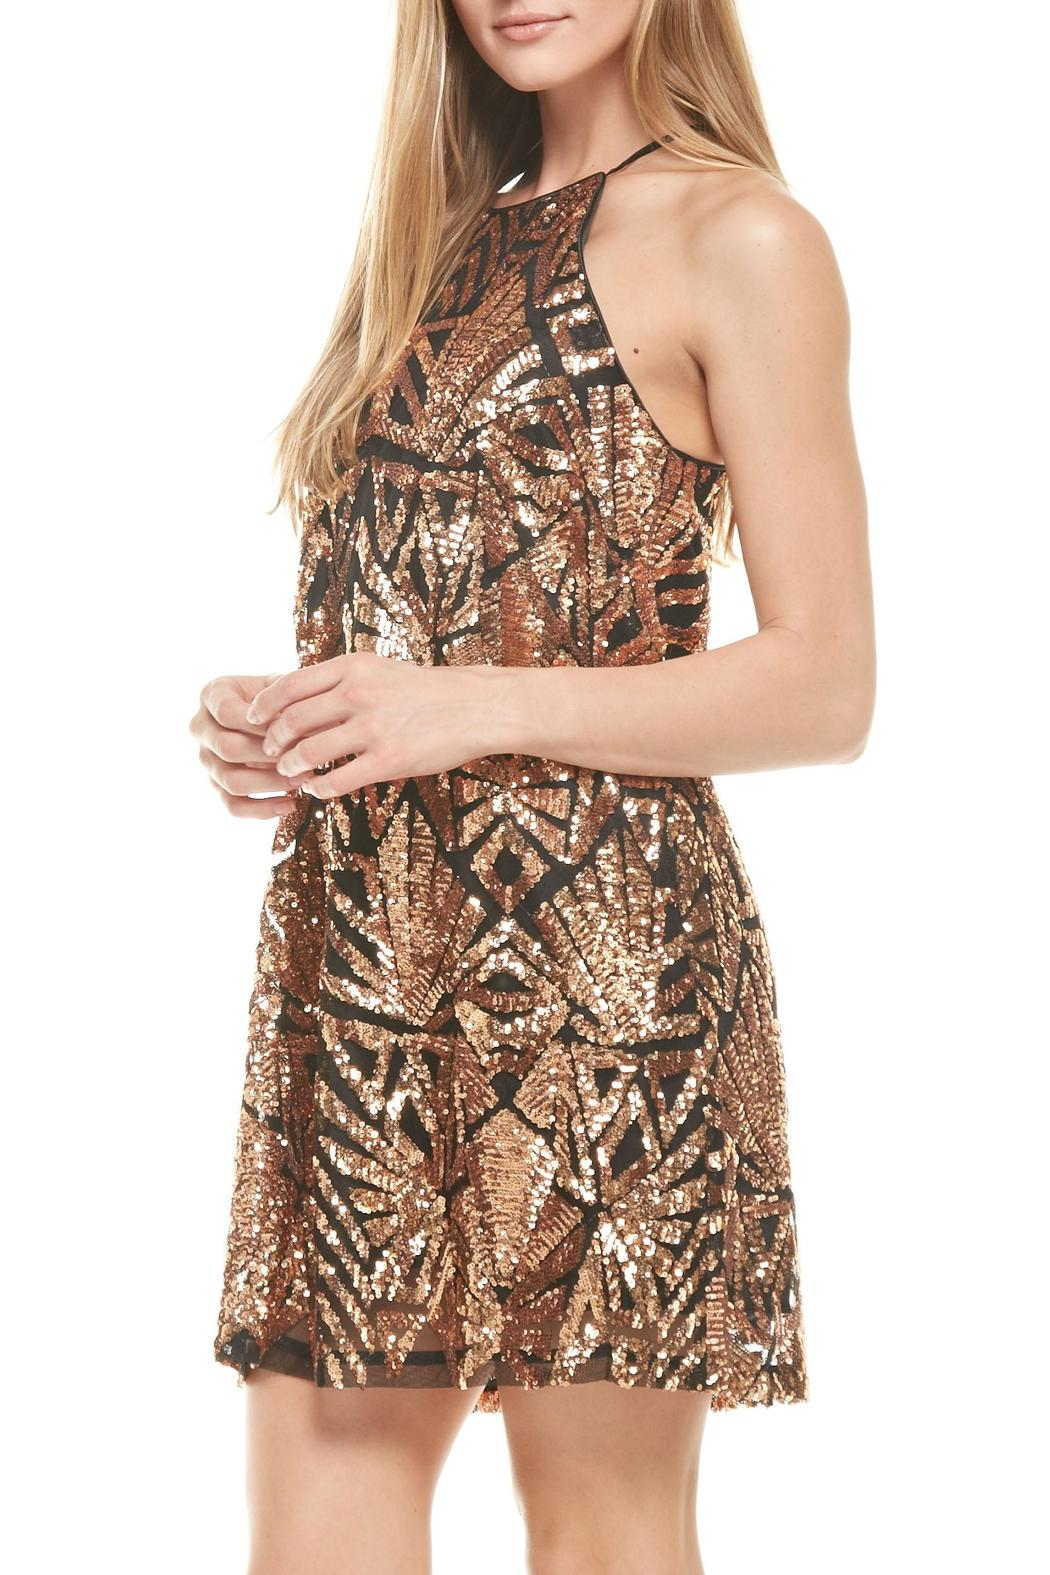 Everly Rose-Gold Sequins Dress - Side Cropped Image